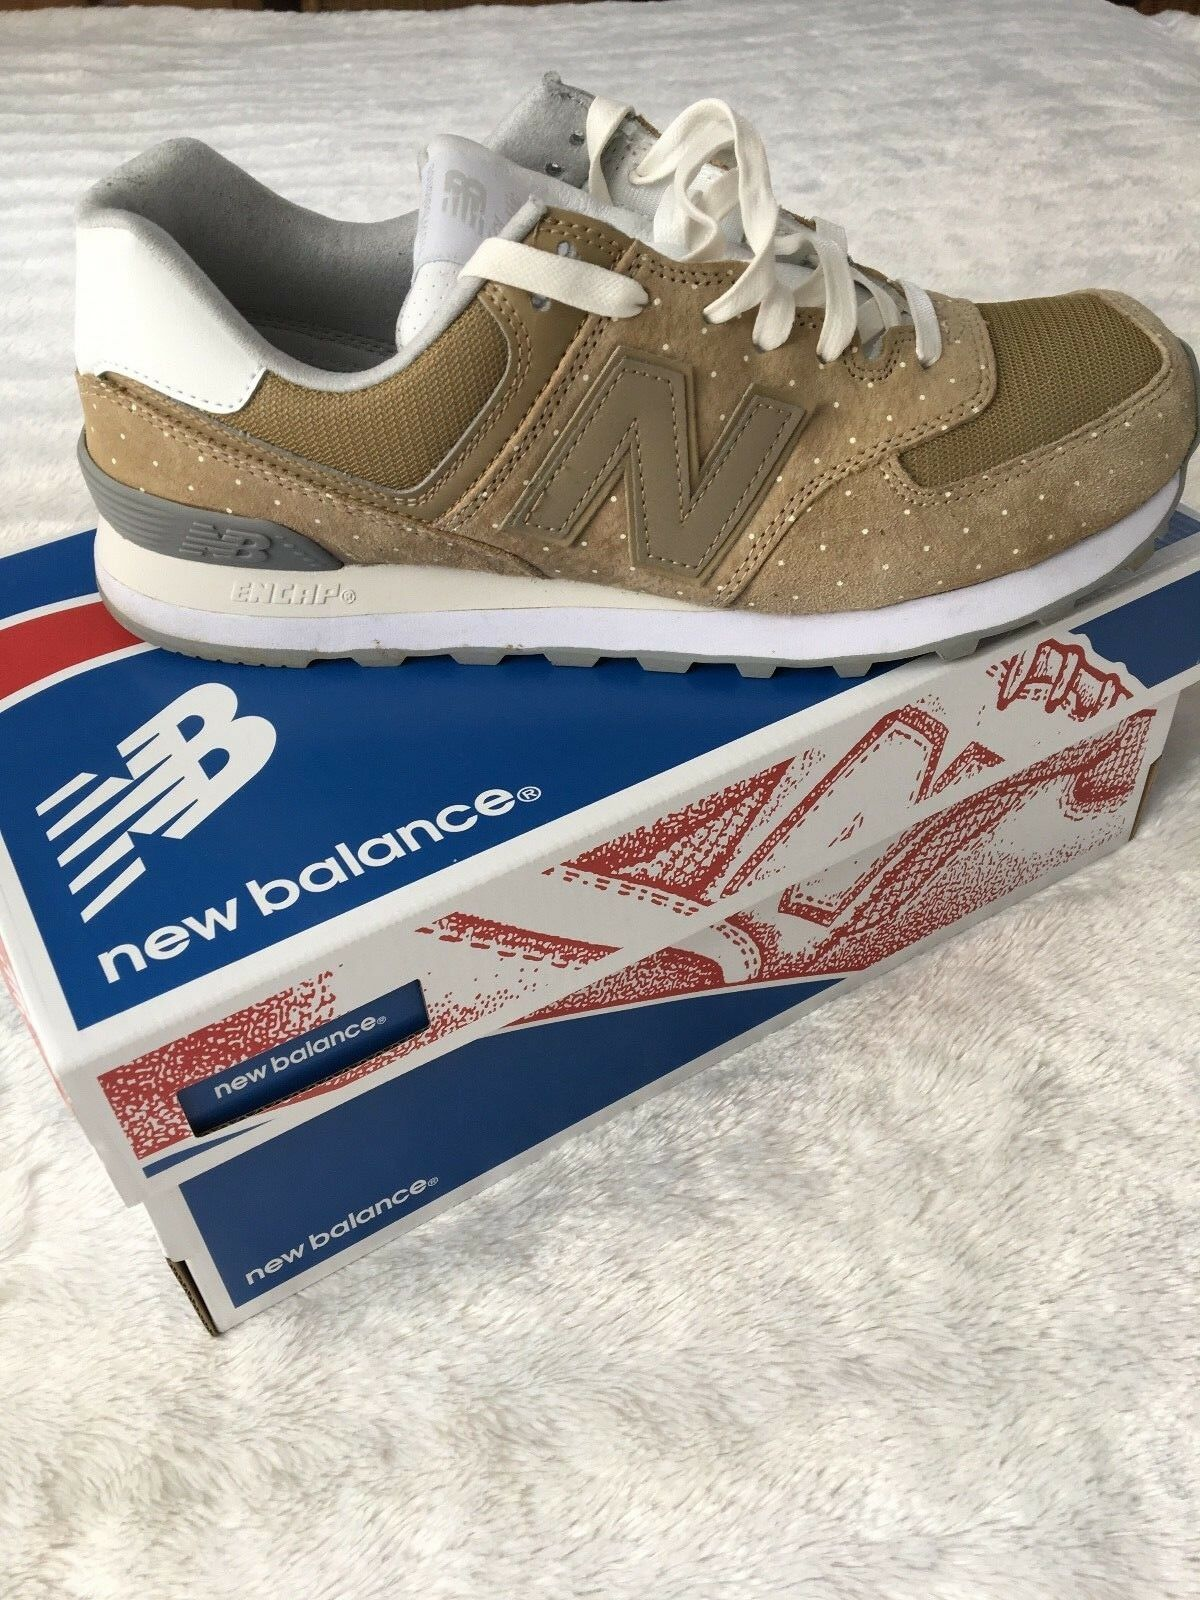 New Balance sold Schuhe Gr.42 Polka Pack sold Balance out Overkill 1300 998 997 1500 574 eb1156